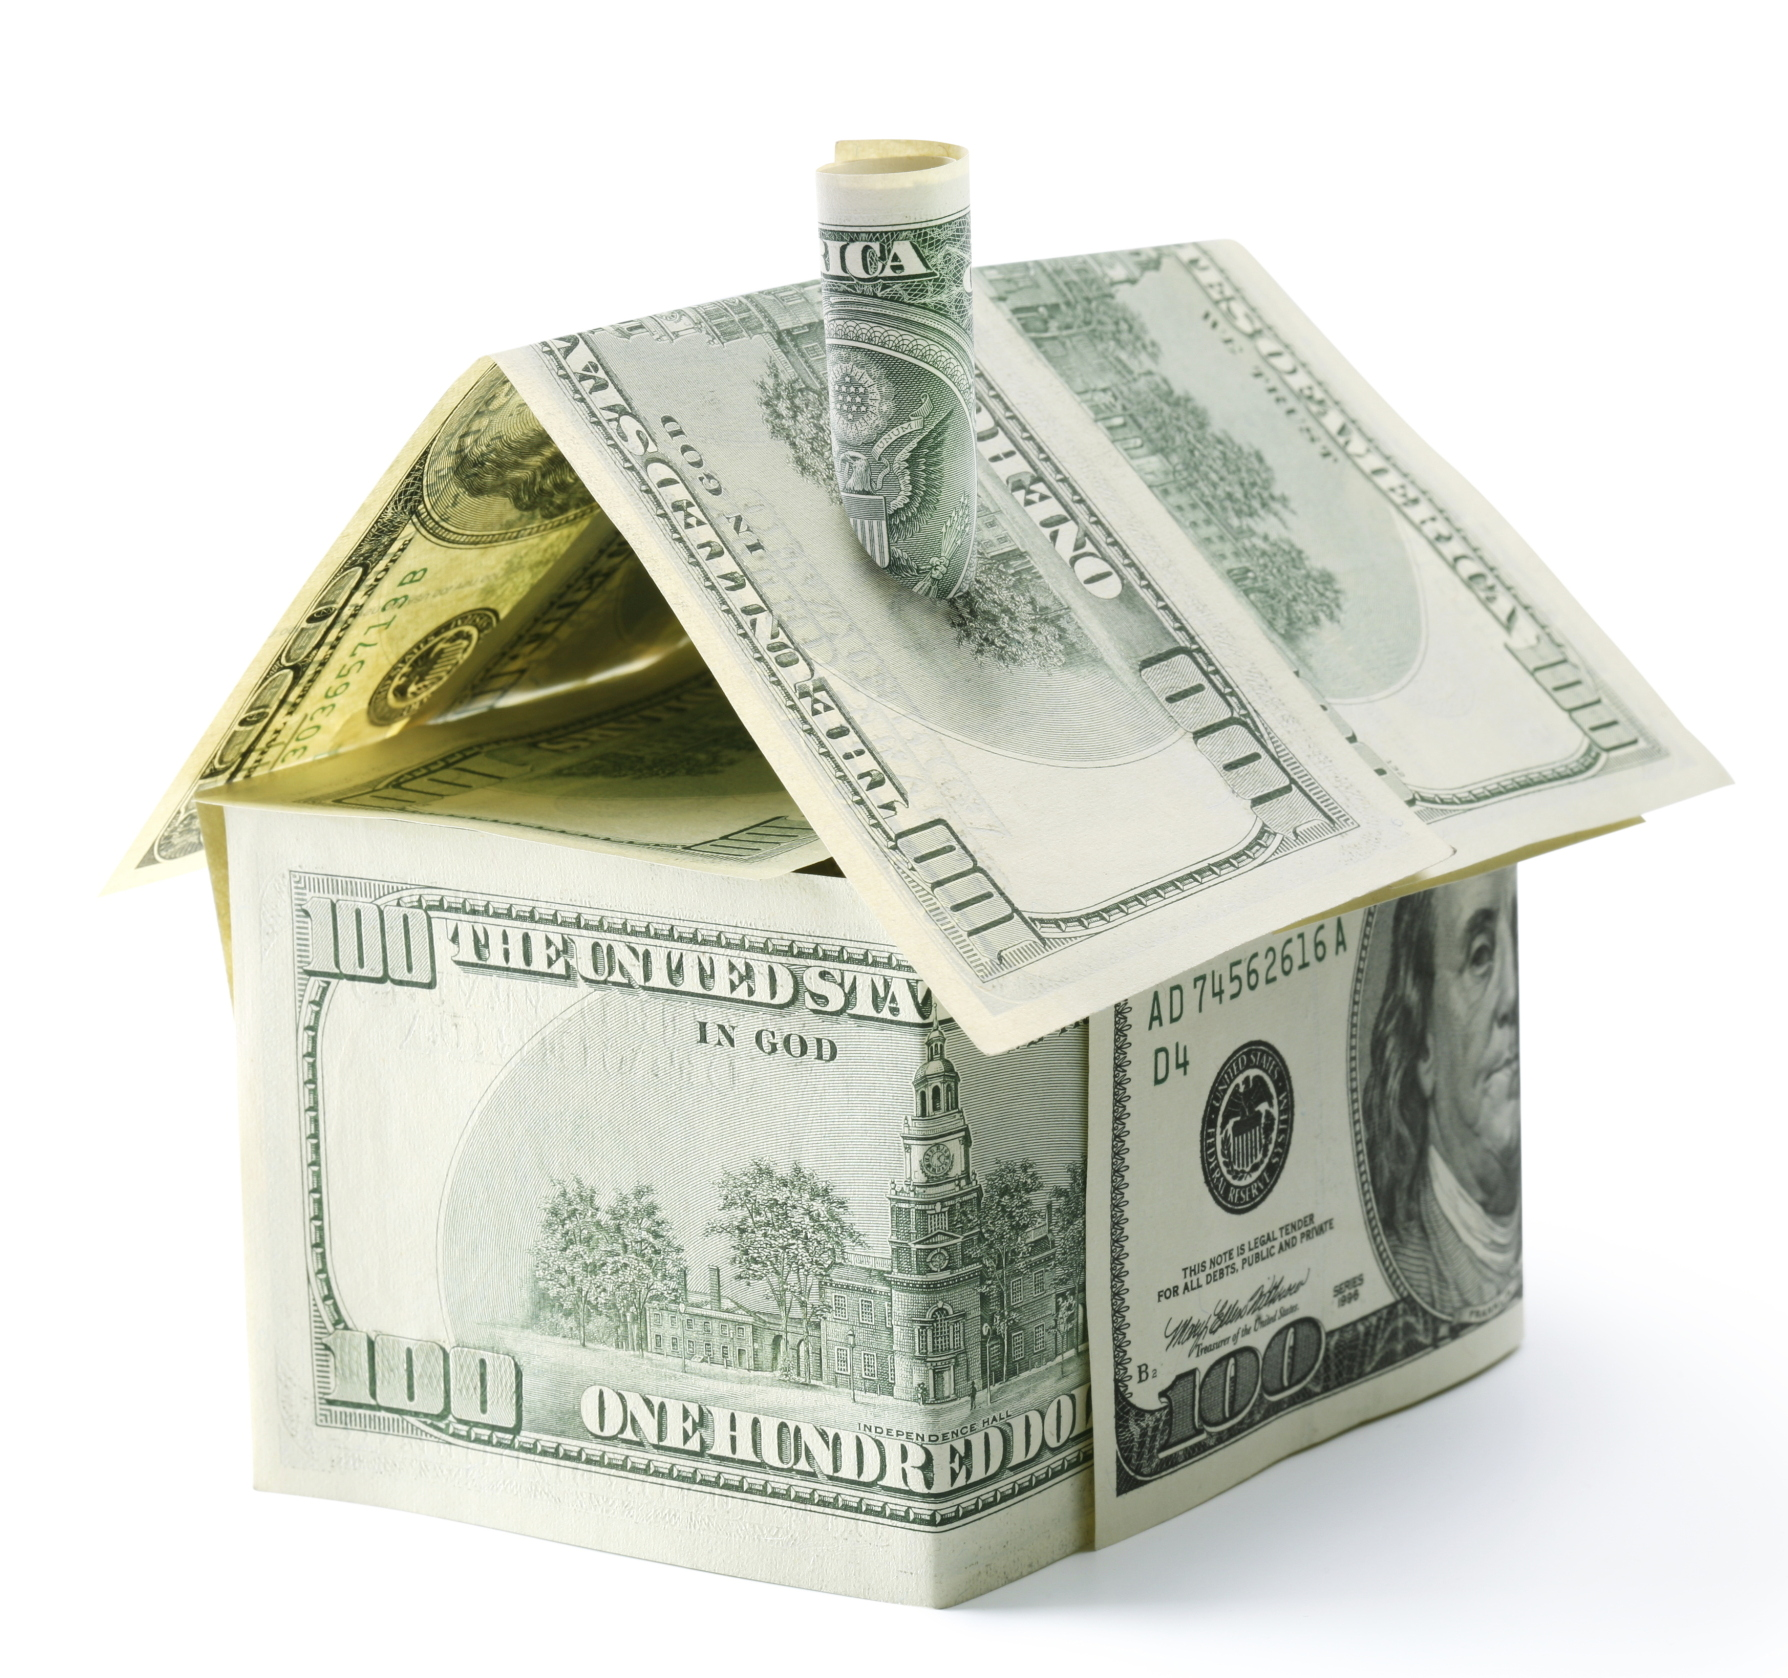 https://i0.wp.com/nationalmortgageprofessional.com/sites/default/files/All_Cash_Home_Sales_Pic.jpg